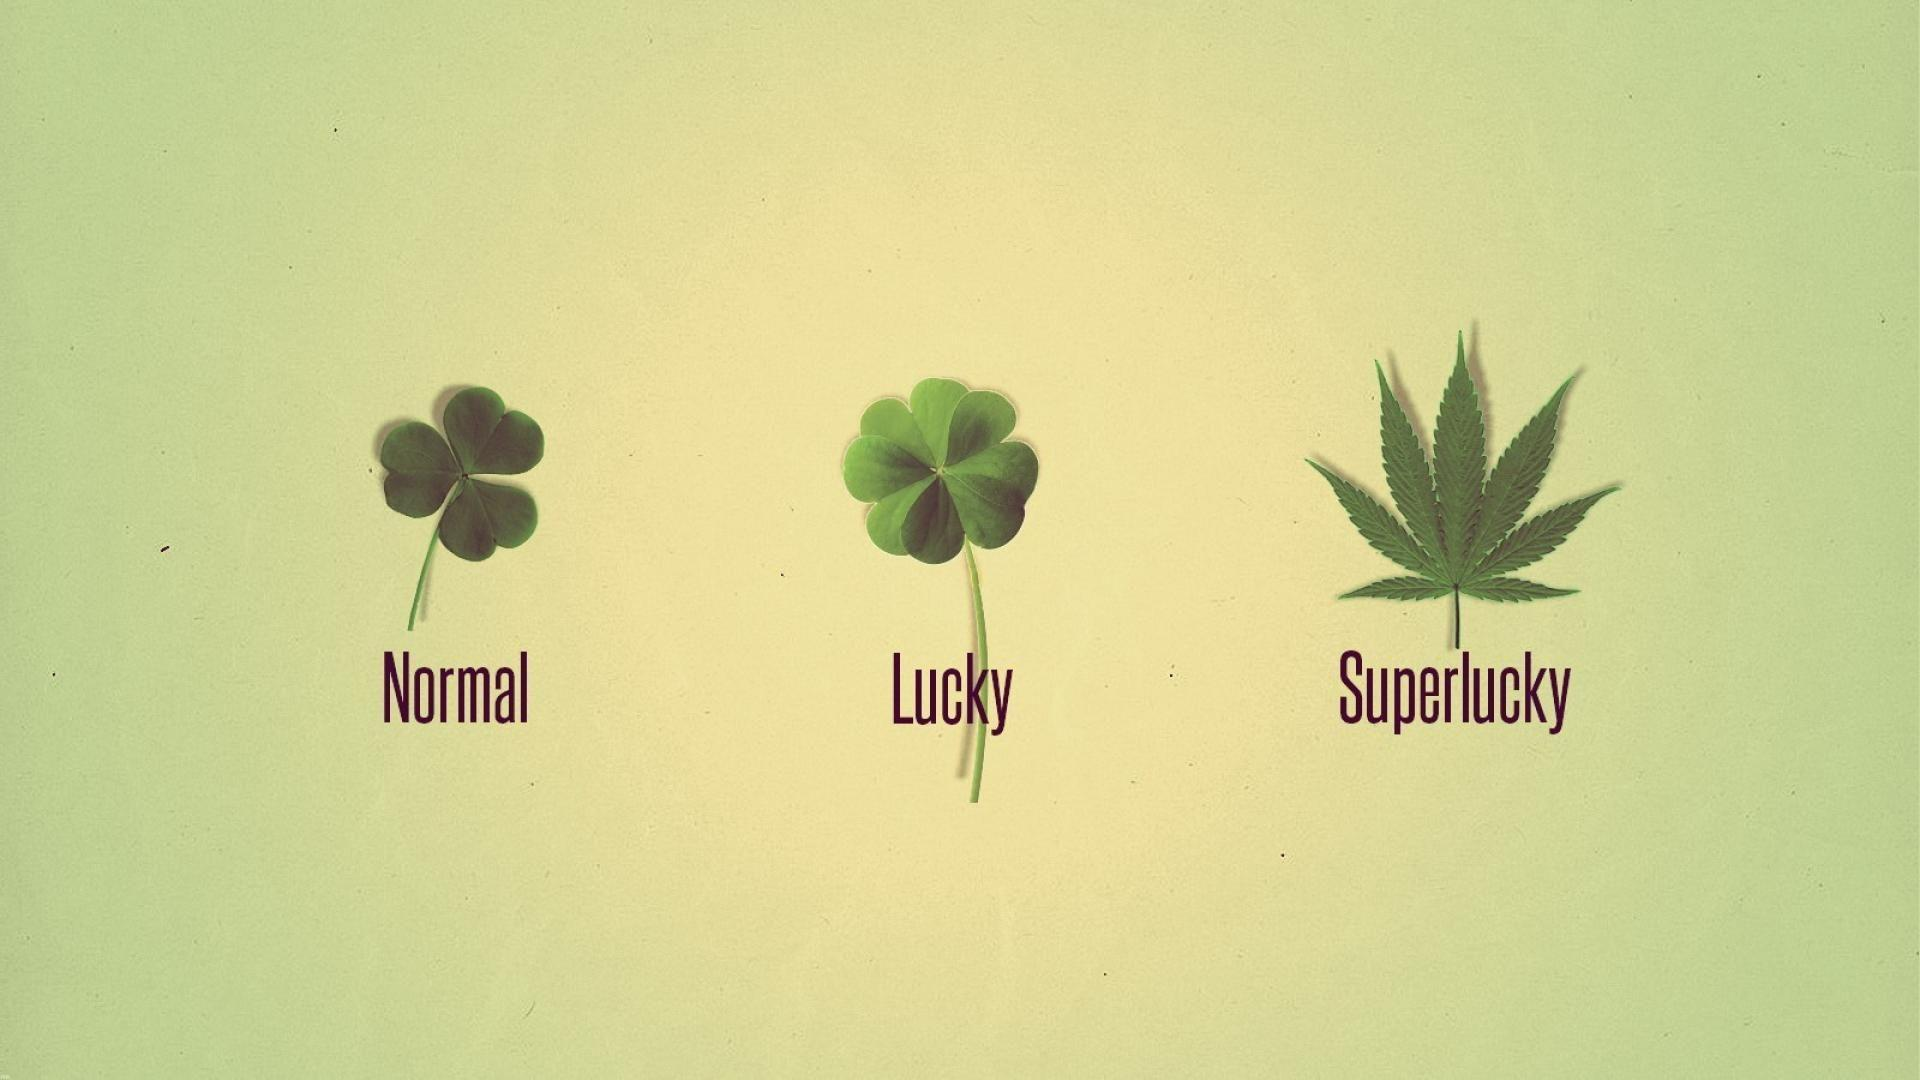 Marijuana lucky wallpapers